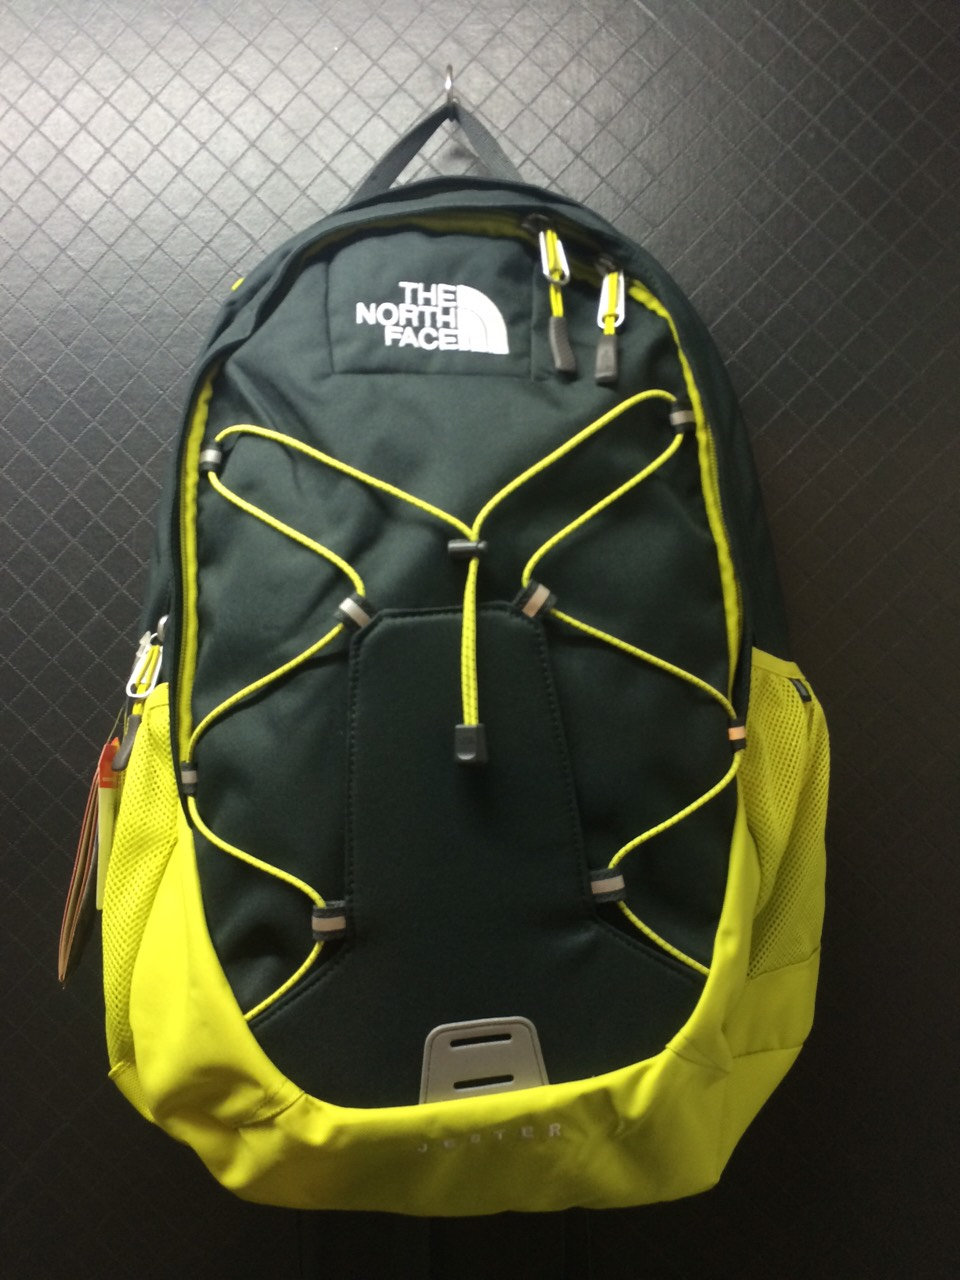 northface_bag01